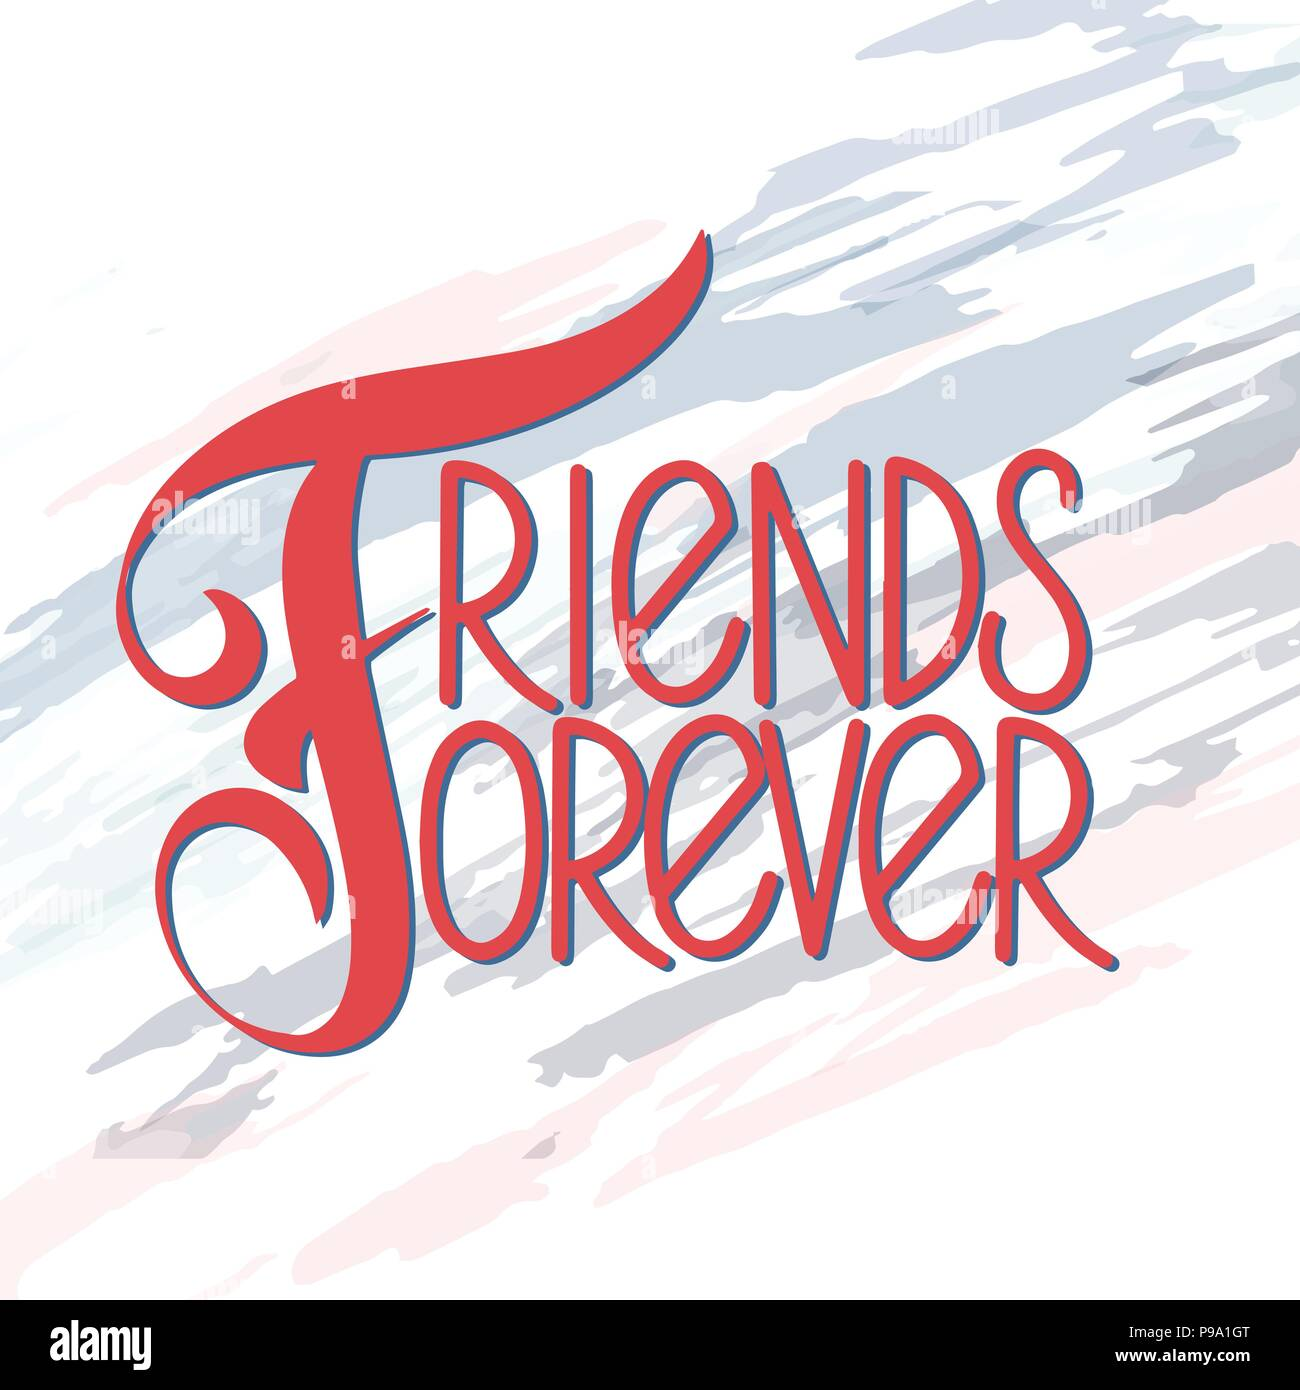 Friendship day hand drawn lettering friends forever vector friendship day hand drawn lettering friends forever vector elements for invitations posters greeting cards t shirt design friendship quotes m4hsunfo